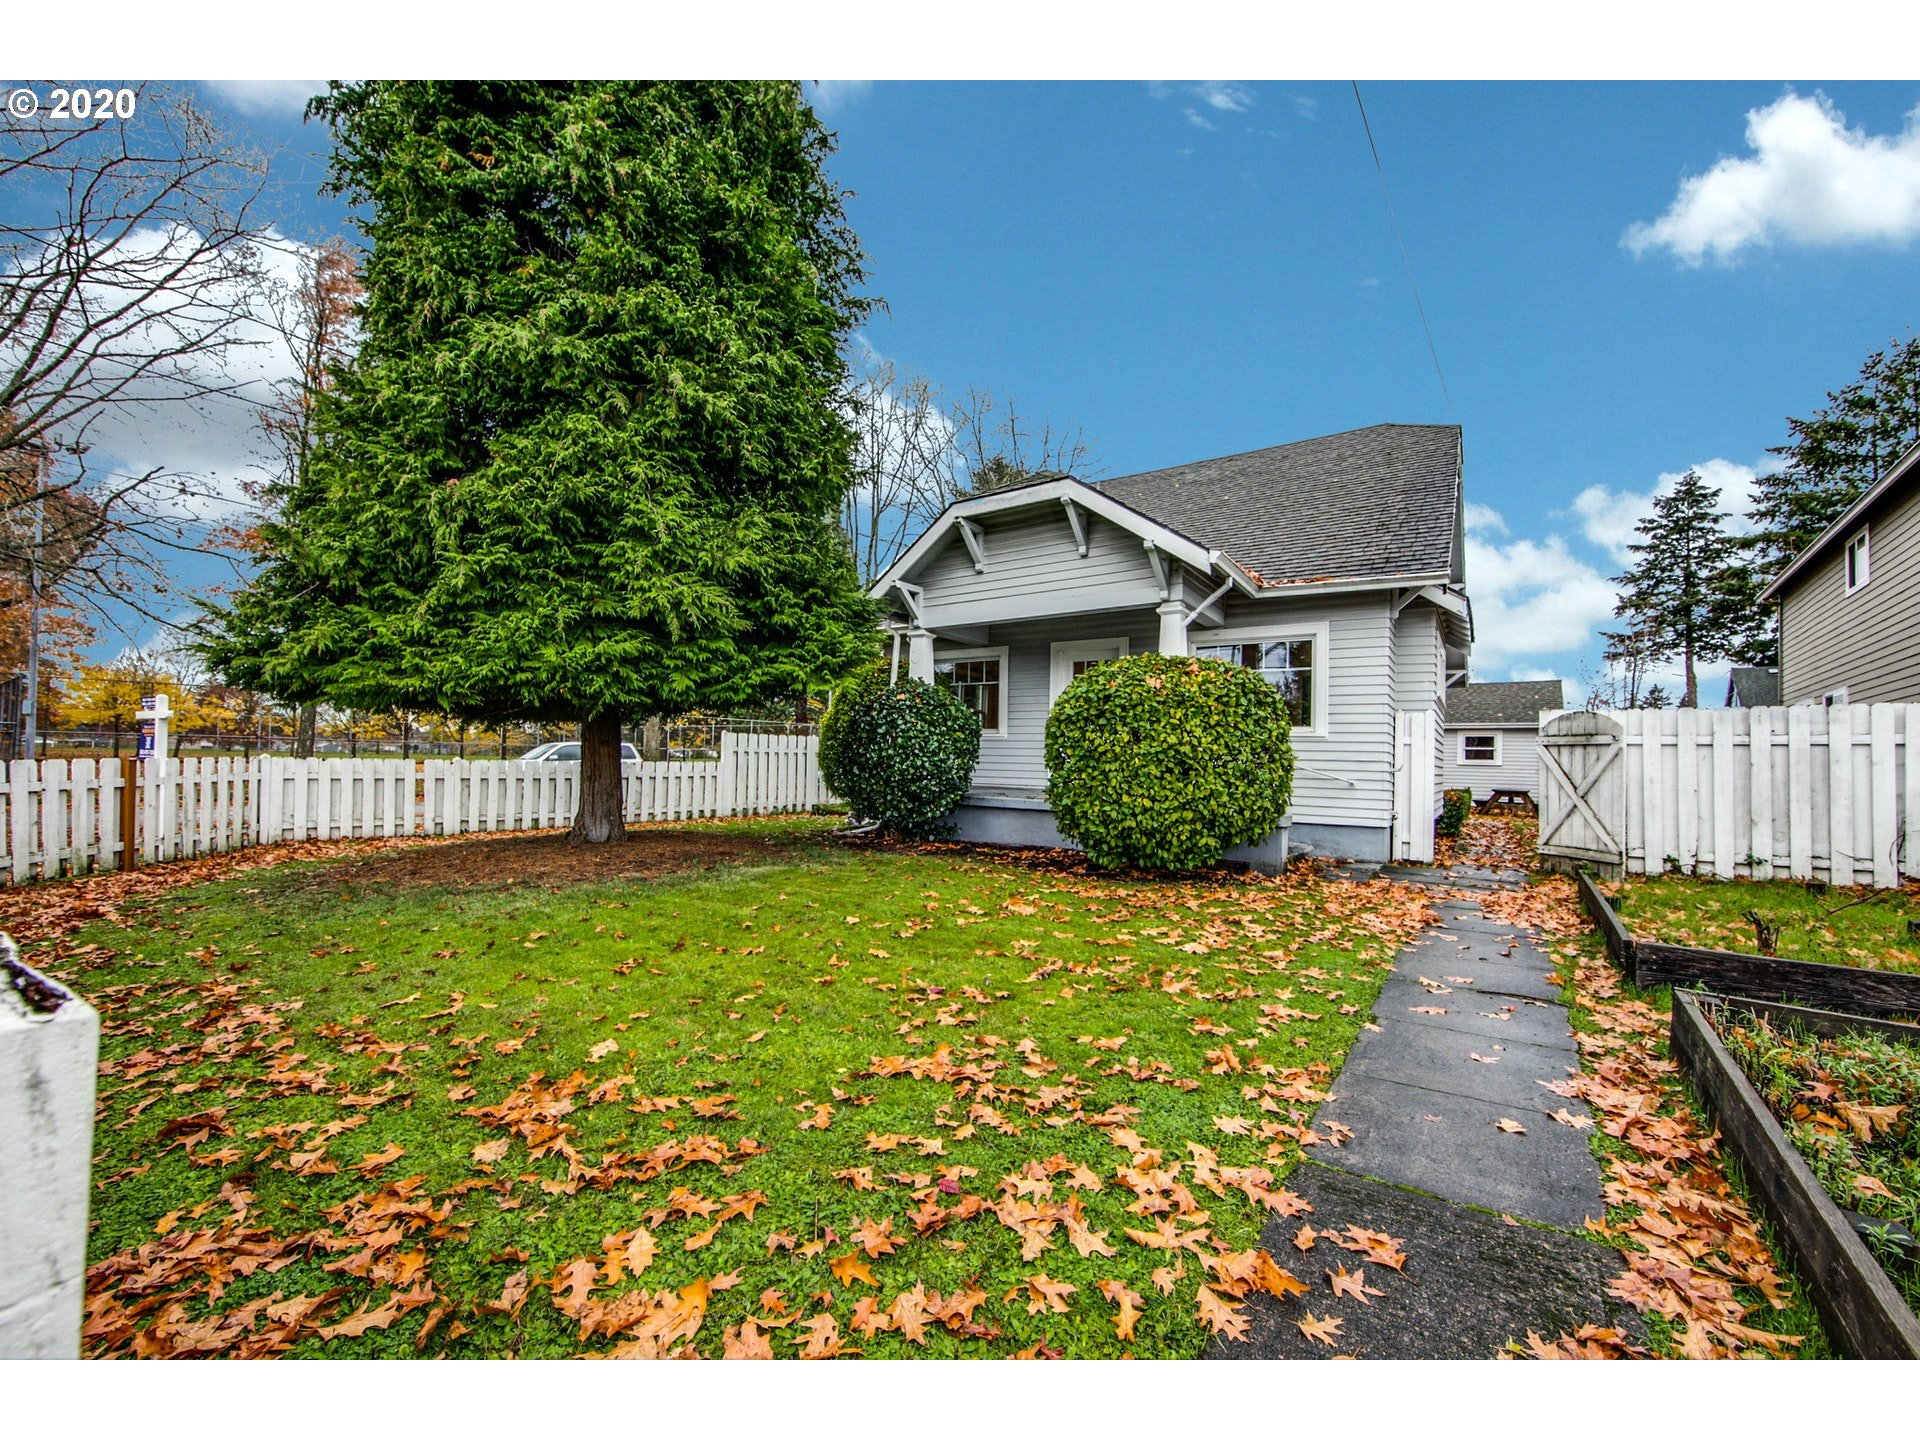 6541 SE 89TH AVE (1 of 28)